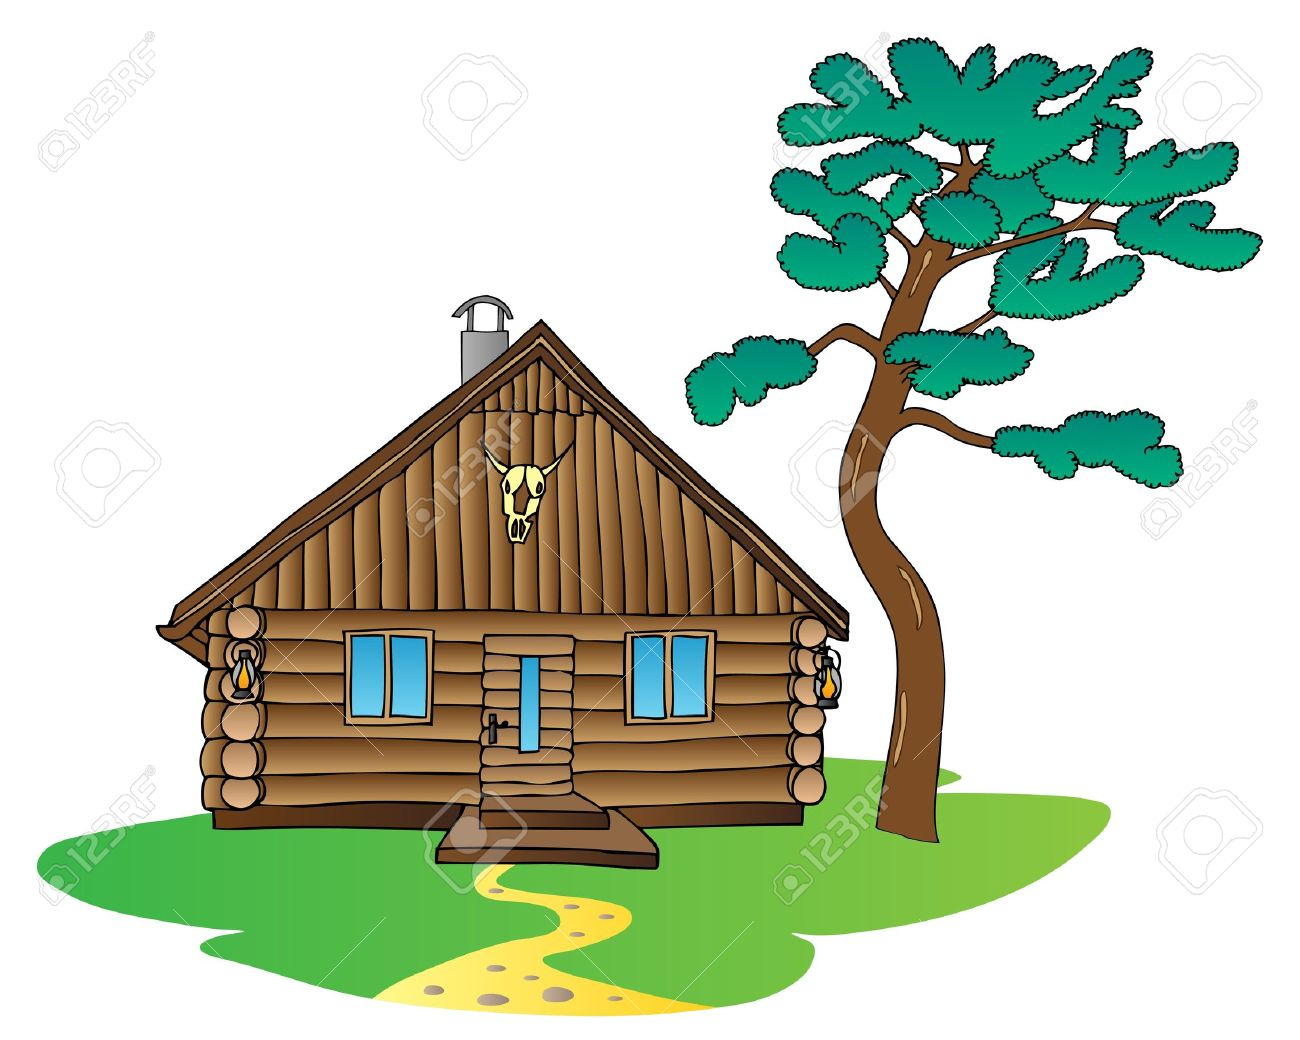 Mountain cabin clipart vector royalty free Mountain Cabin Cliparts 3 - 1300 X 1040 - Making-The-Web.com vector royalty free